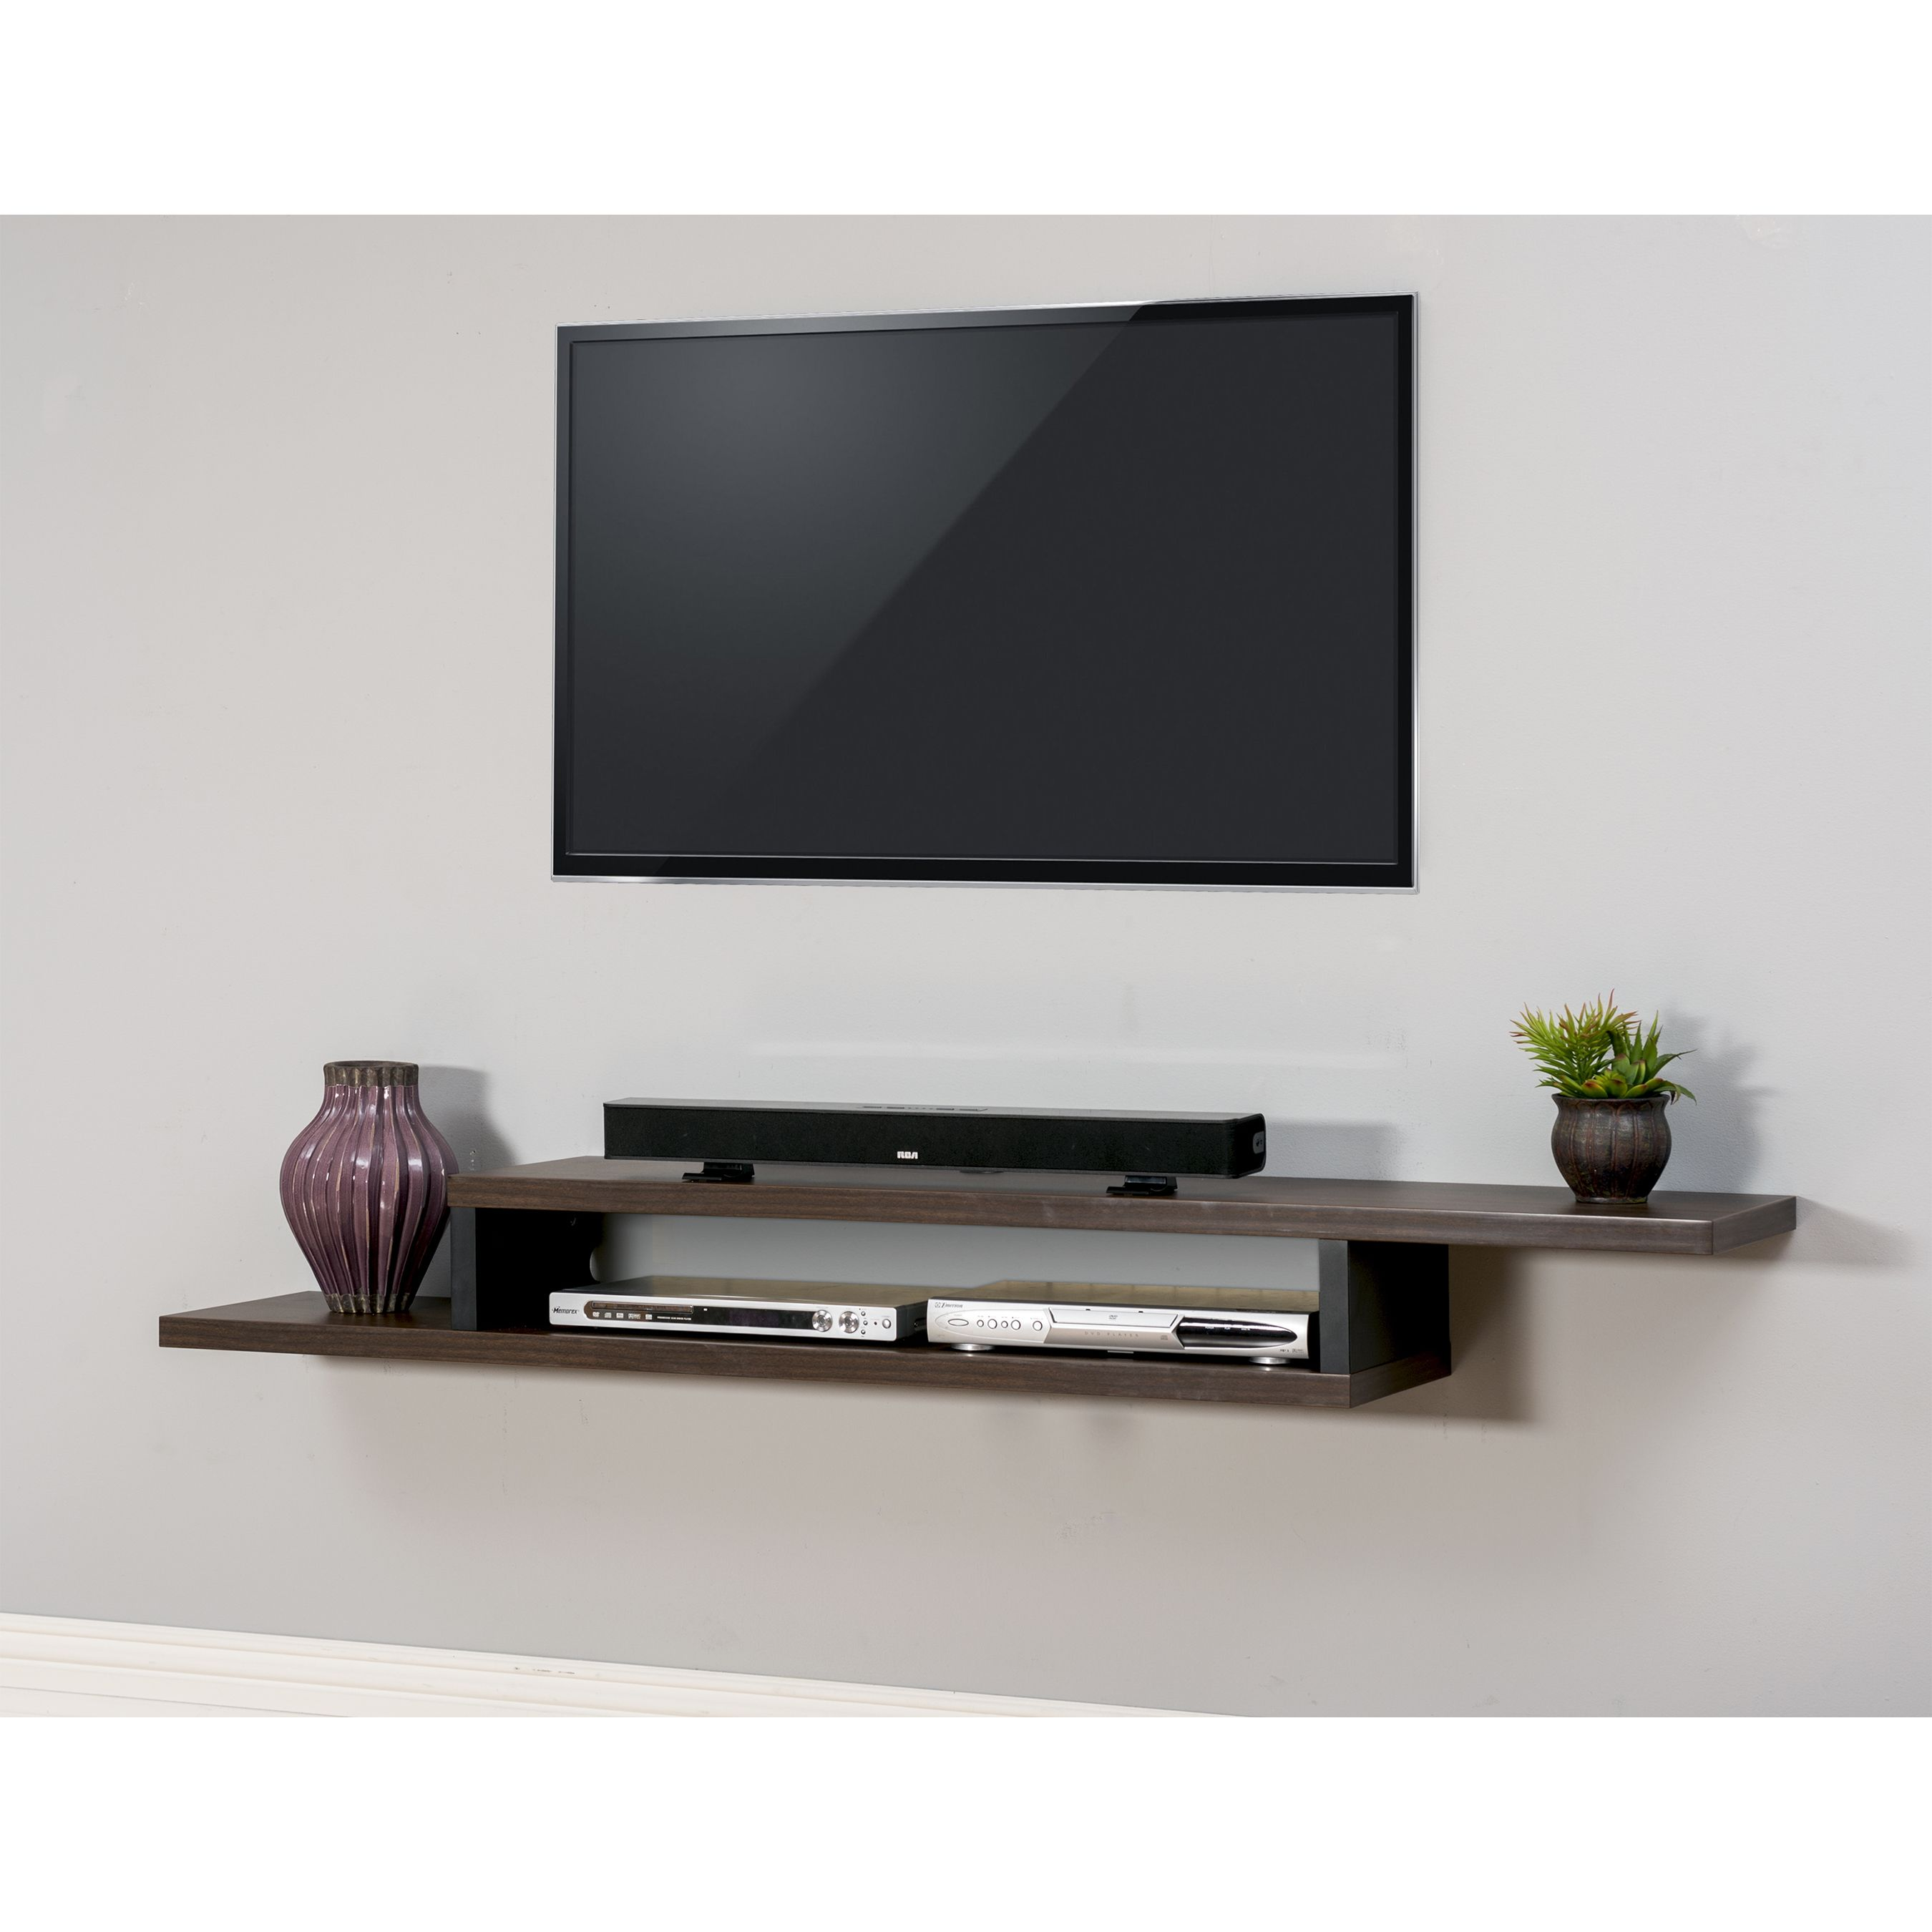 Askew 72-inch Wall Mount TV Console | Random | Vardagsrum, Hem